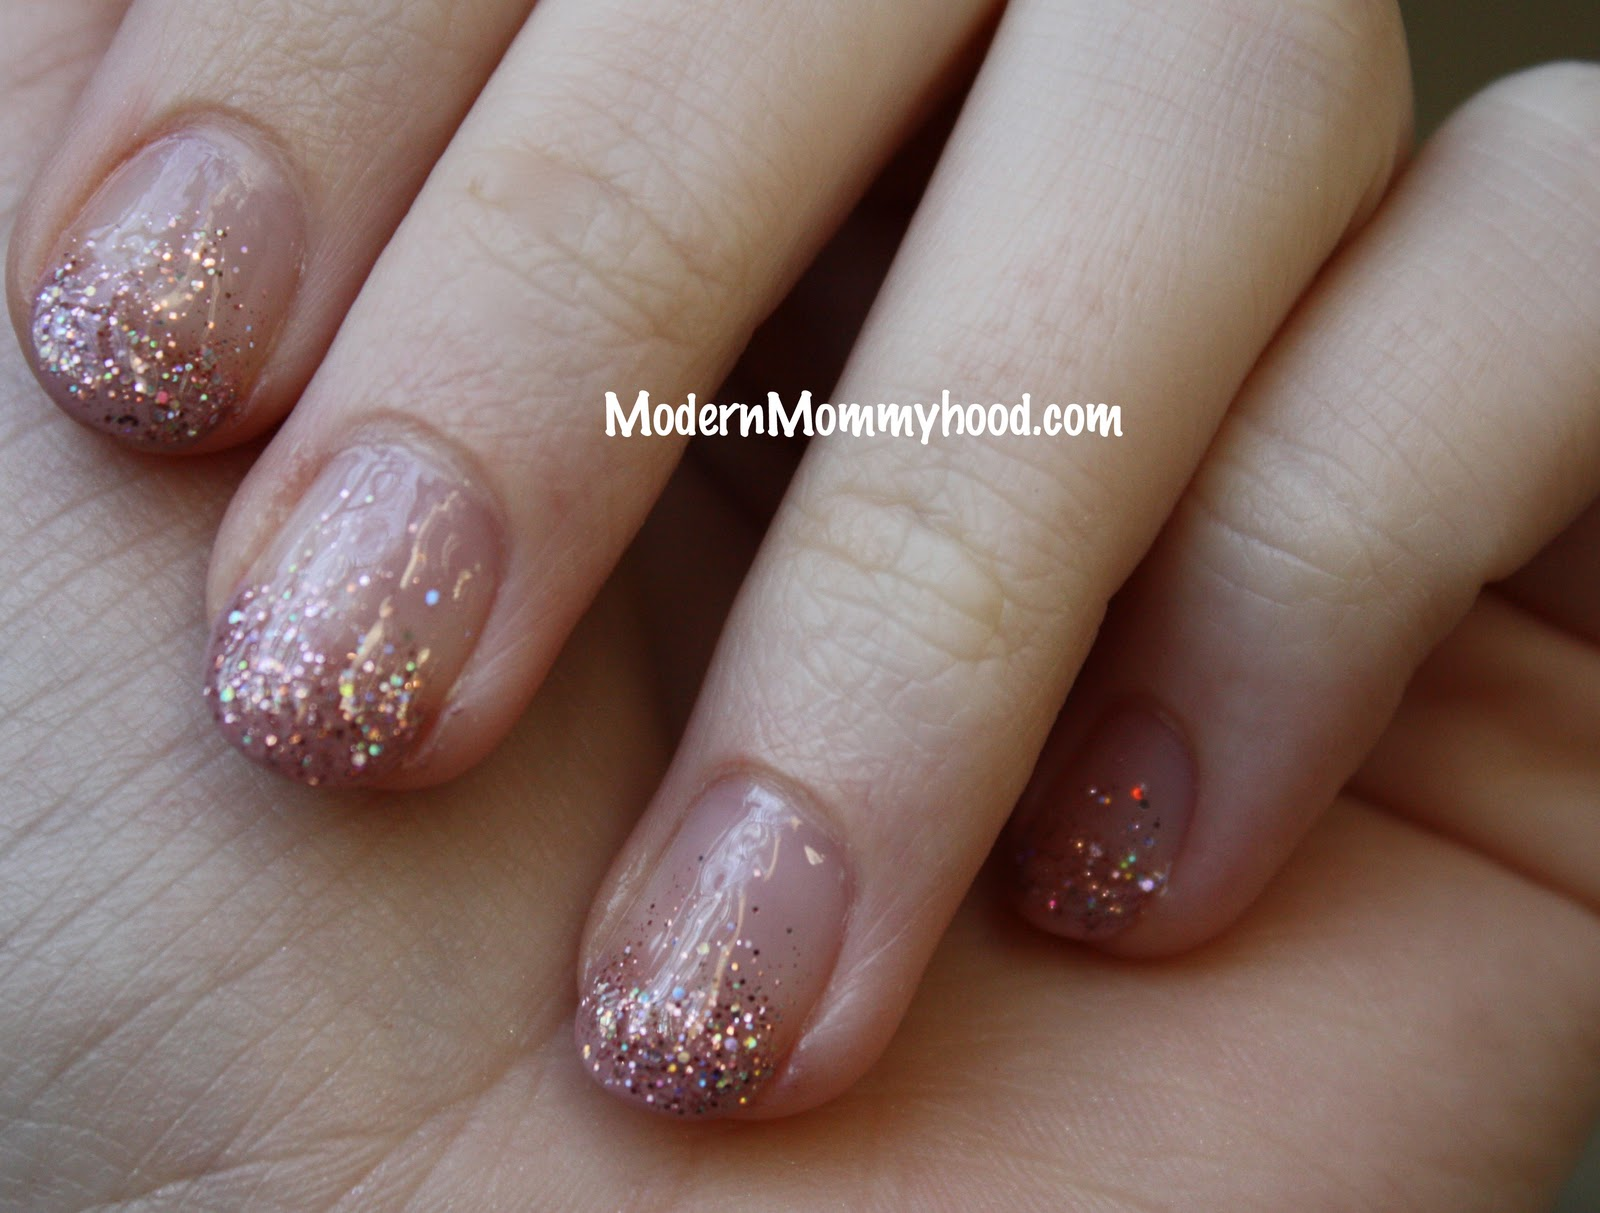 Glitter Nail Polish Tutorial - Modernly Morgan